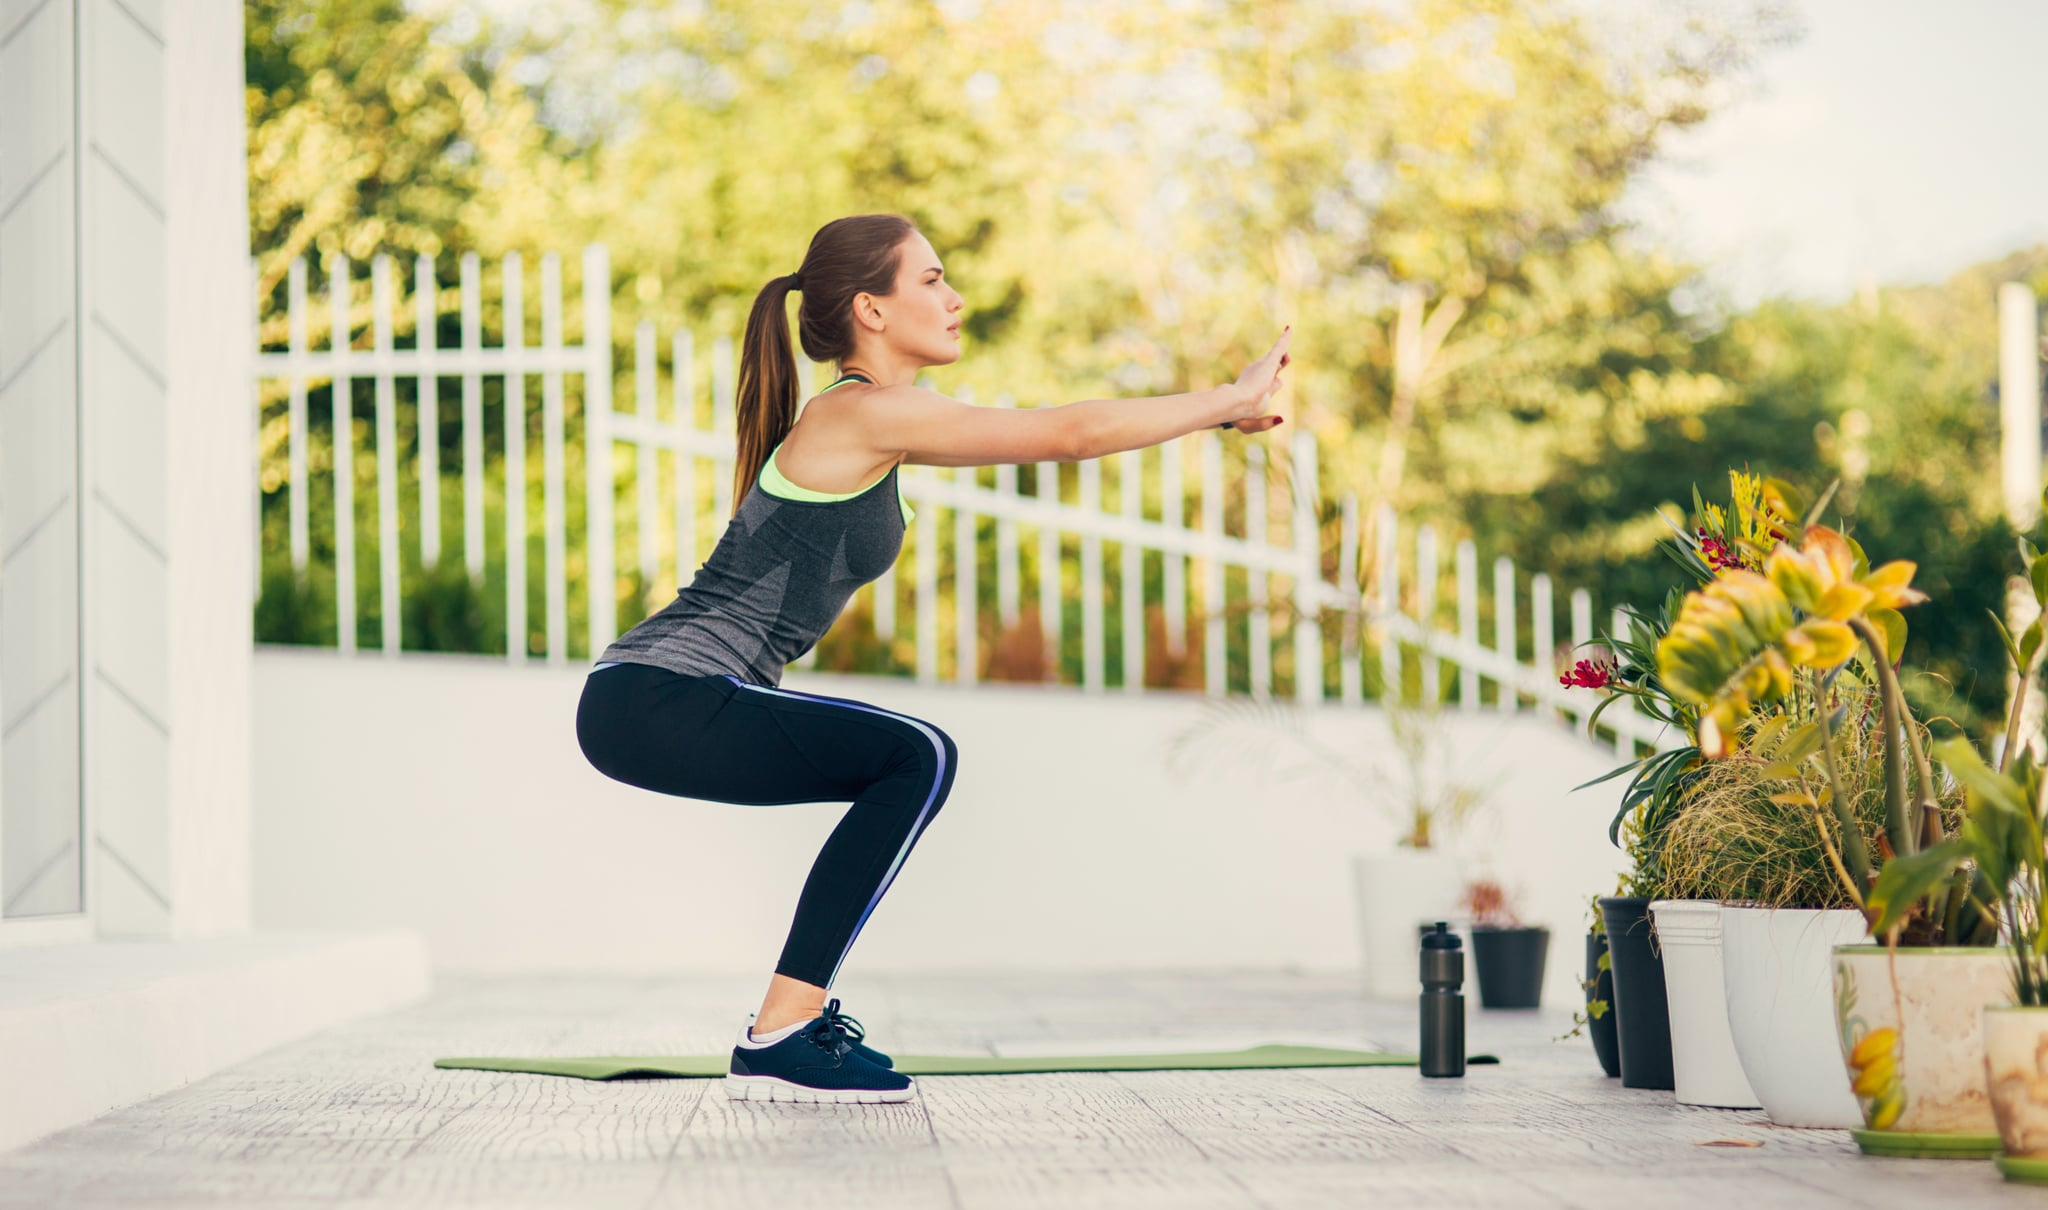 Do squat challenges actually work?